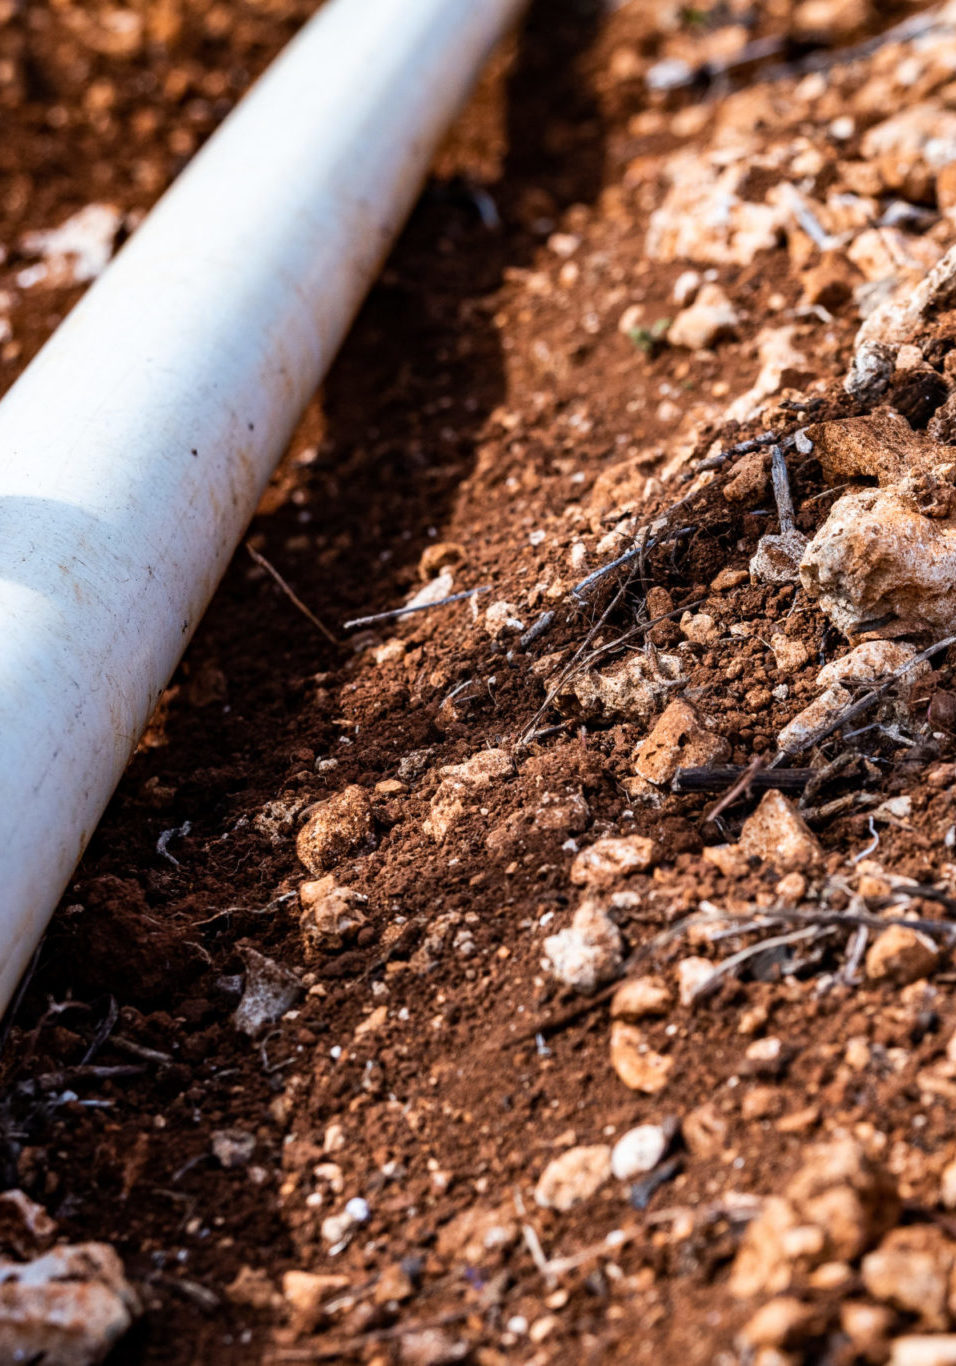 PVC pipe in dirt trench outdoors for plumbing water drainage installation. Underground irrigation system.